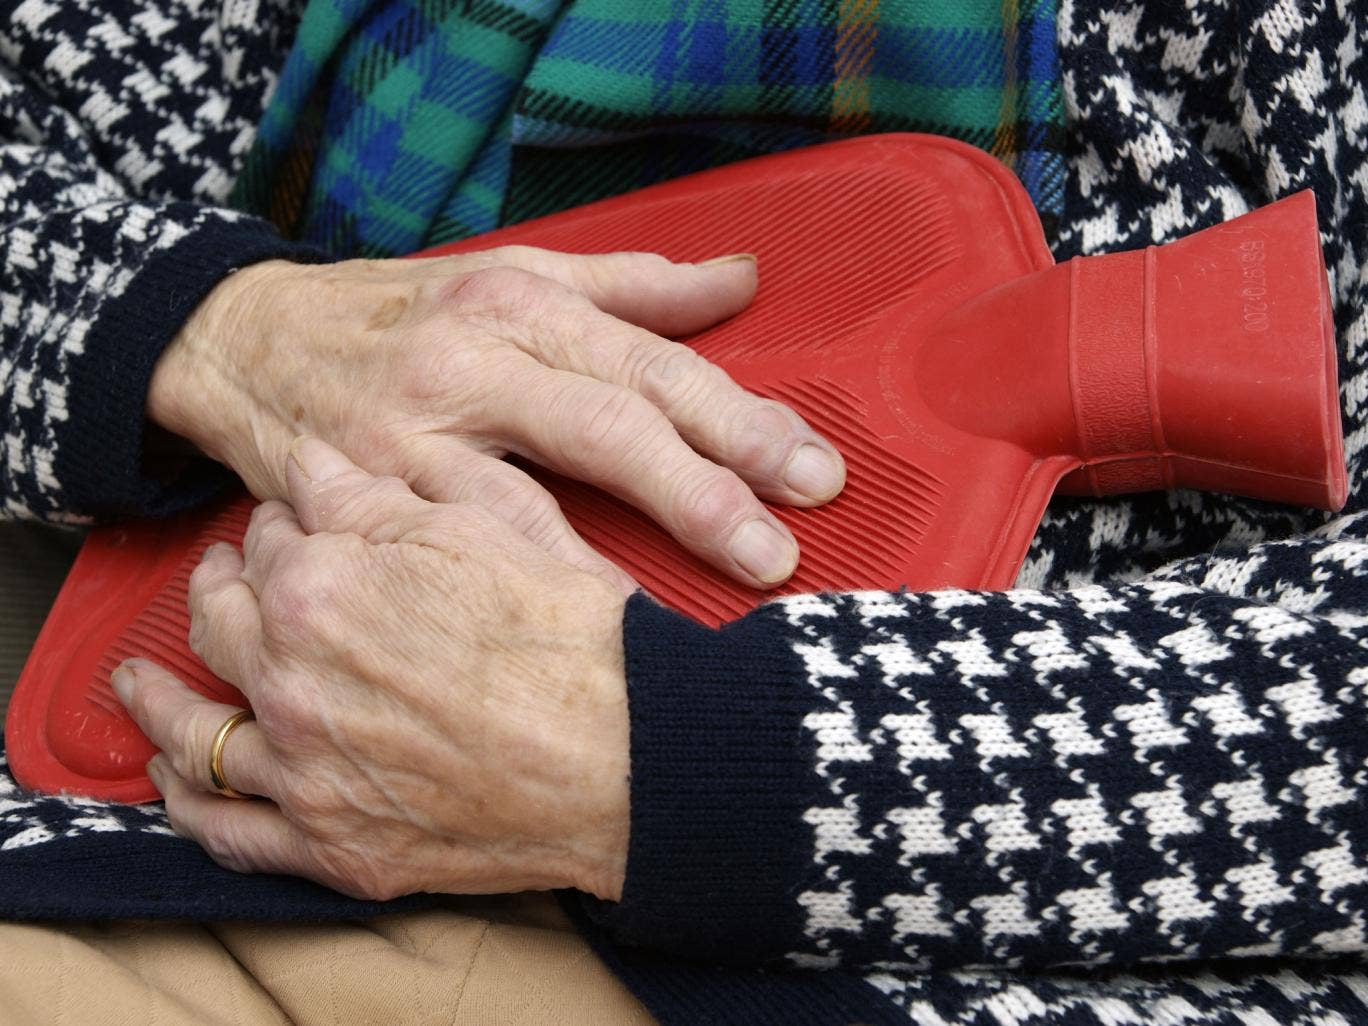 Saga issued a stark warning that removing the payments would kill more pensioners unable to afford to heat their homes